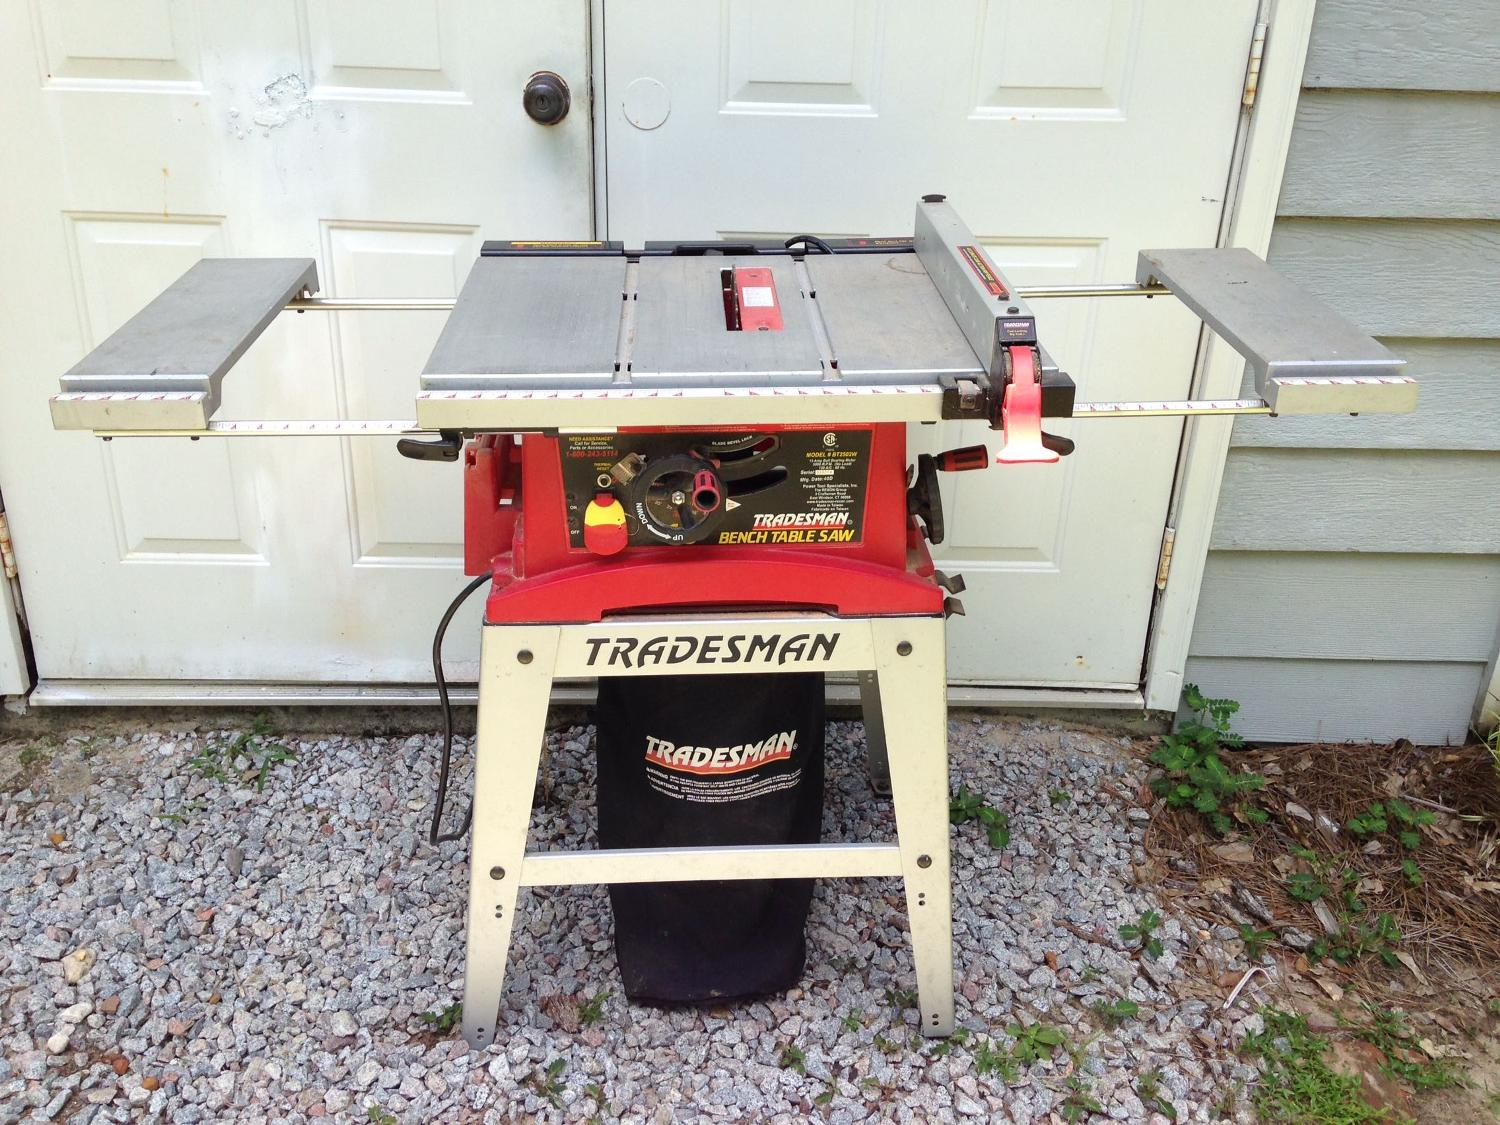 Find more Tradesman Table Saw for sale at up to 90% off